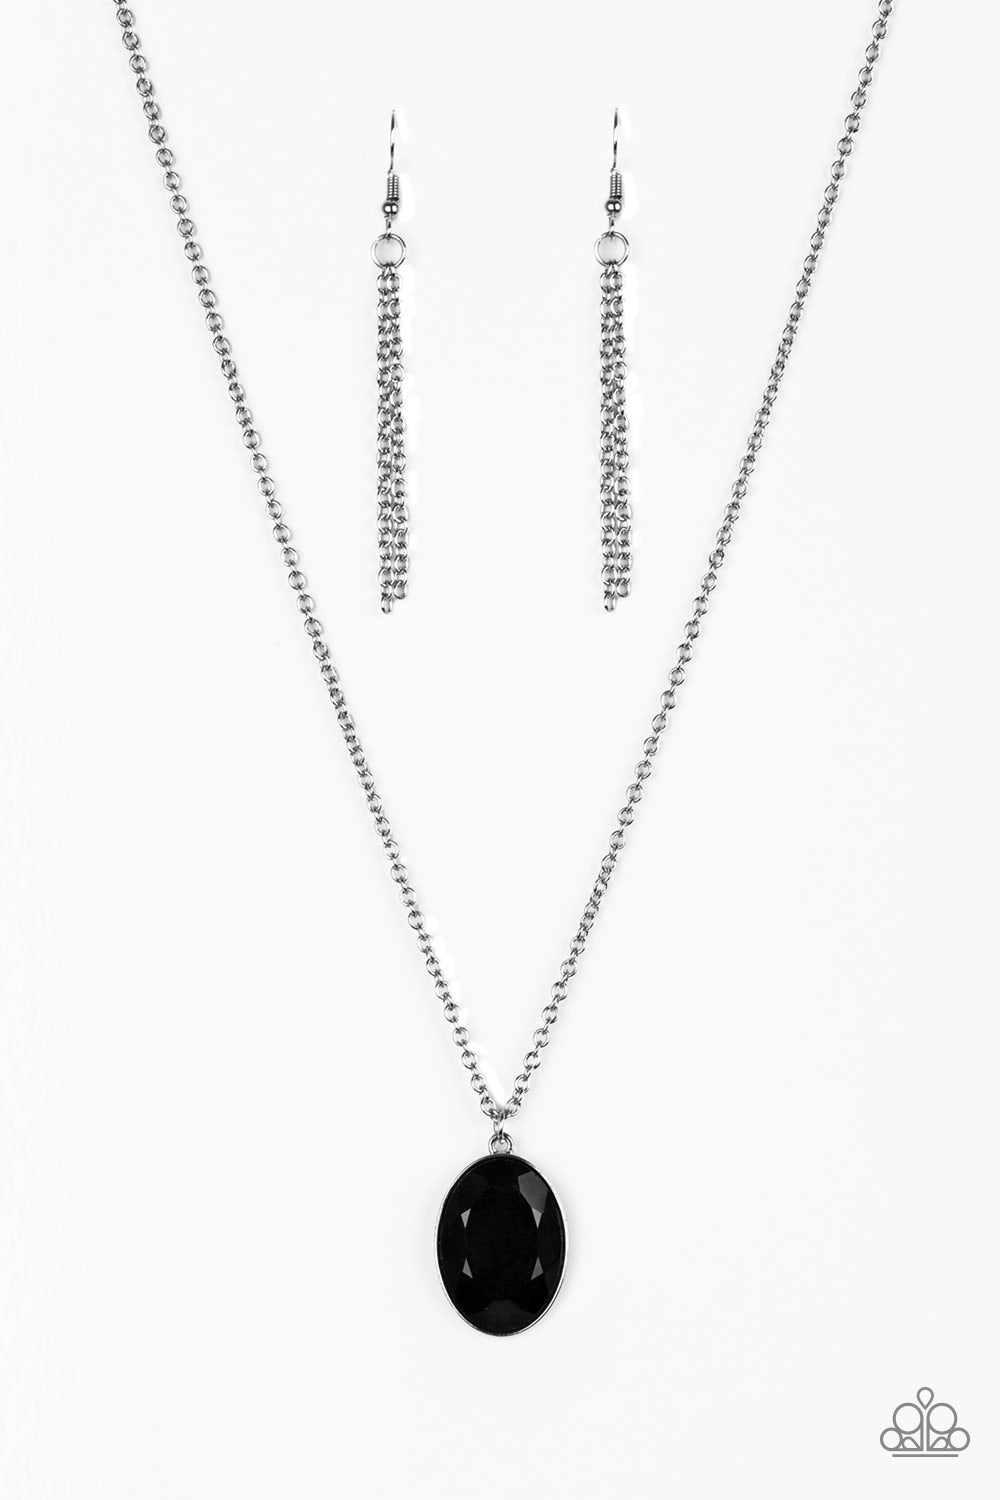 Paparazzi Accessories - Definitely Duchess - Black Necklace Set - JMJ Jewelry Collection